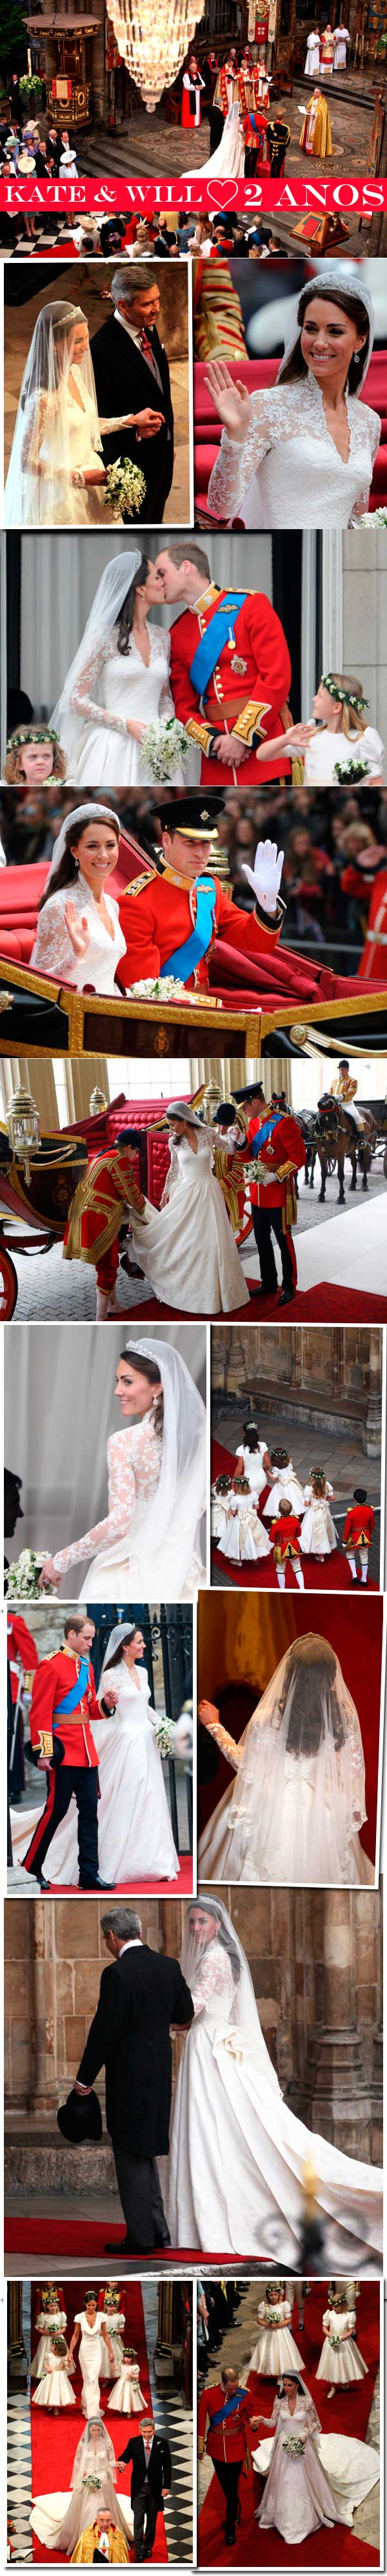 casamento-kate-william